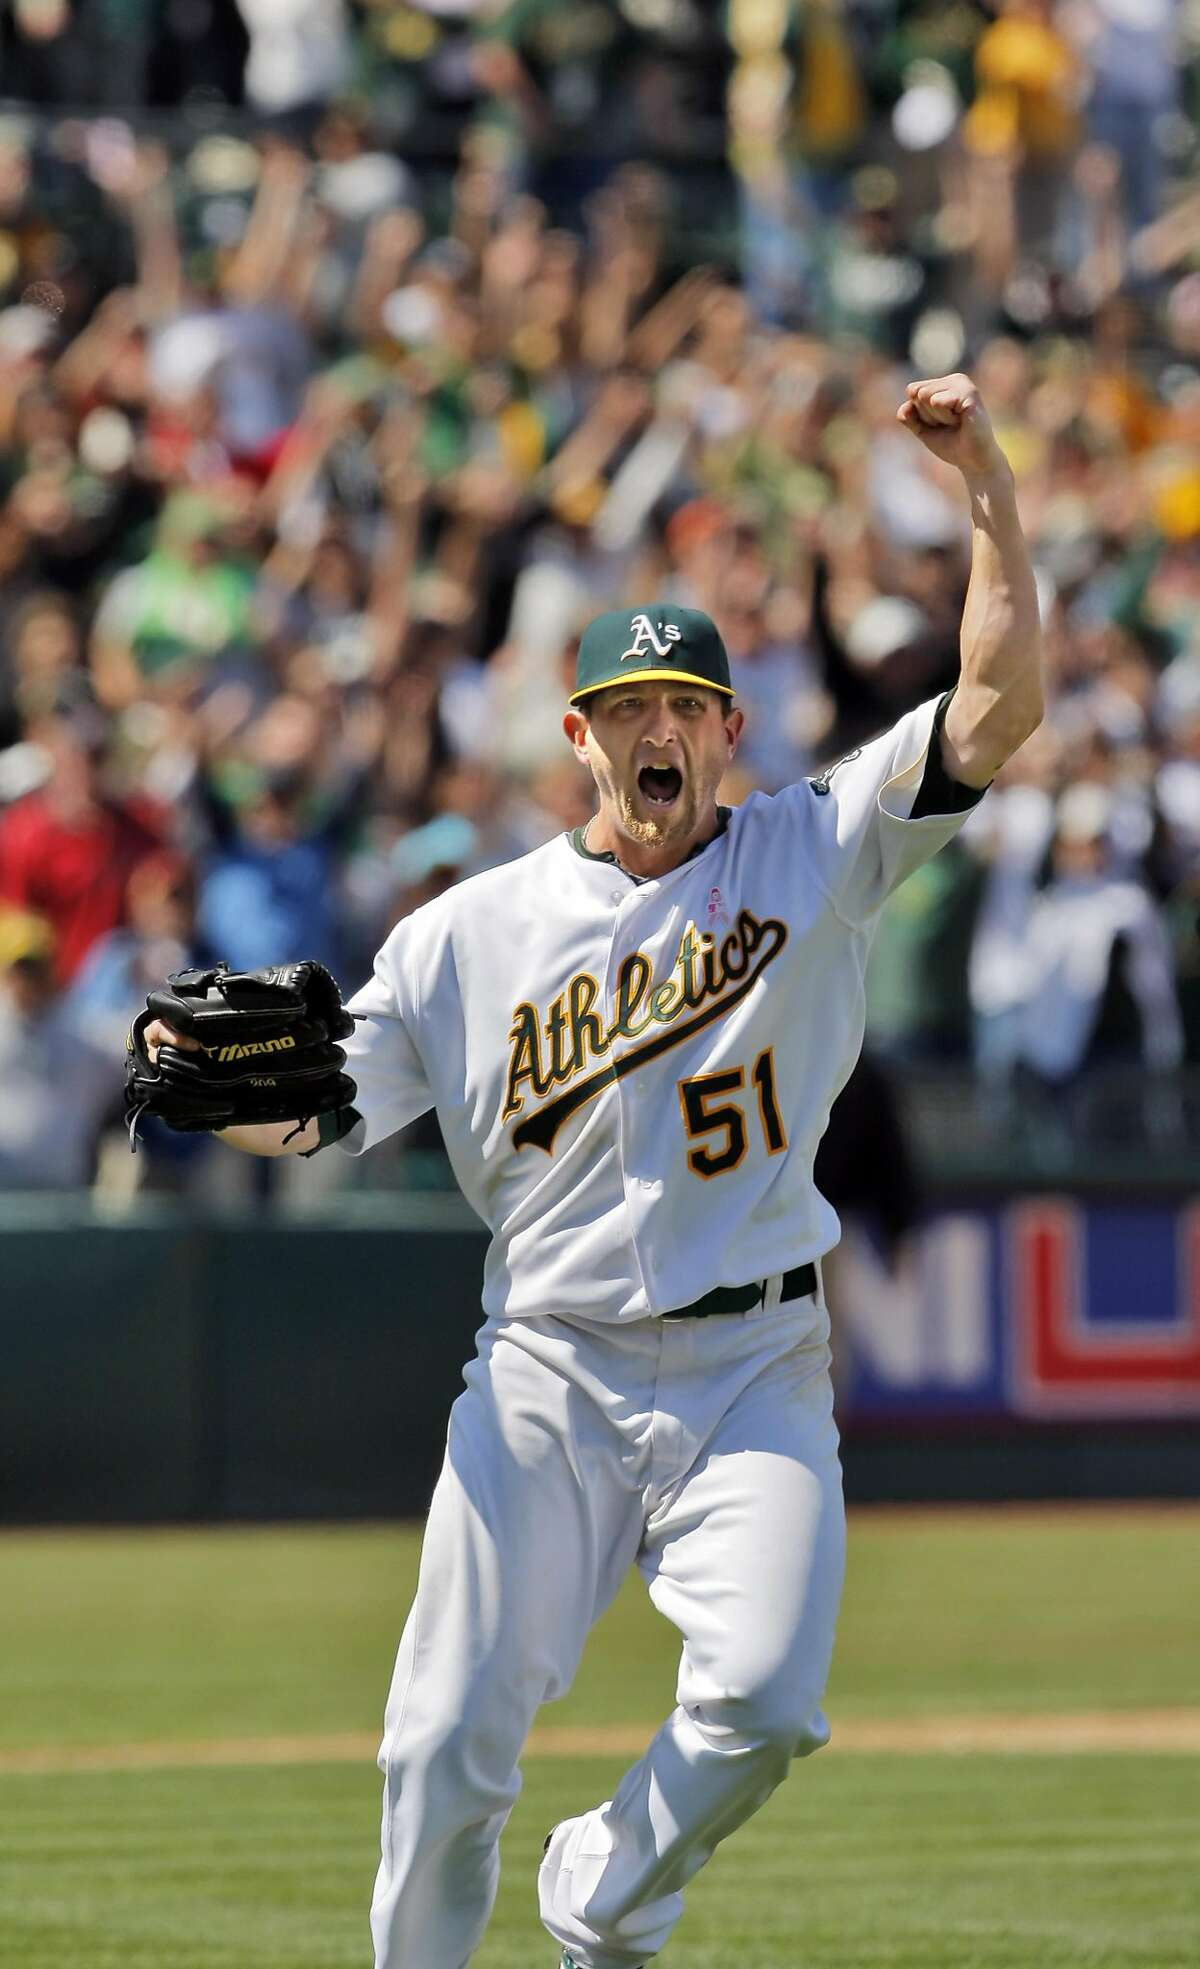 Dallas Braden reacts to the last out in a game against the Tampa Bay Rays in which he pitched a perfect game, the 19th in MLB history. The Oakland Athletics played the Tampa Bay Rays at the Oakland Alameda County Coliseum in Oakland, Calif., on Sunday, M